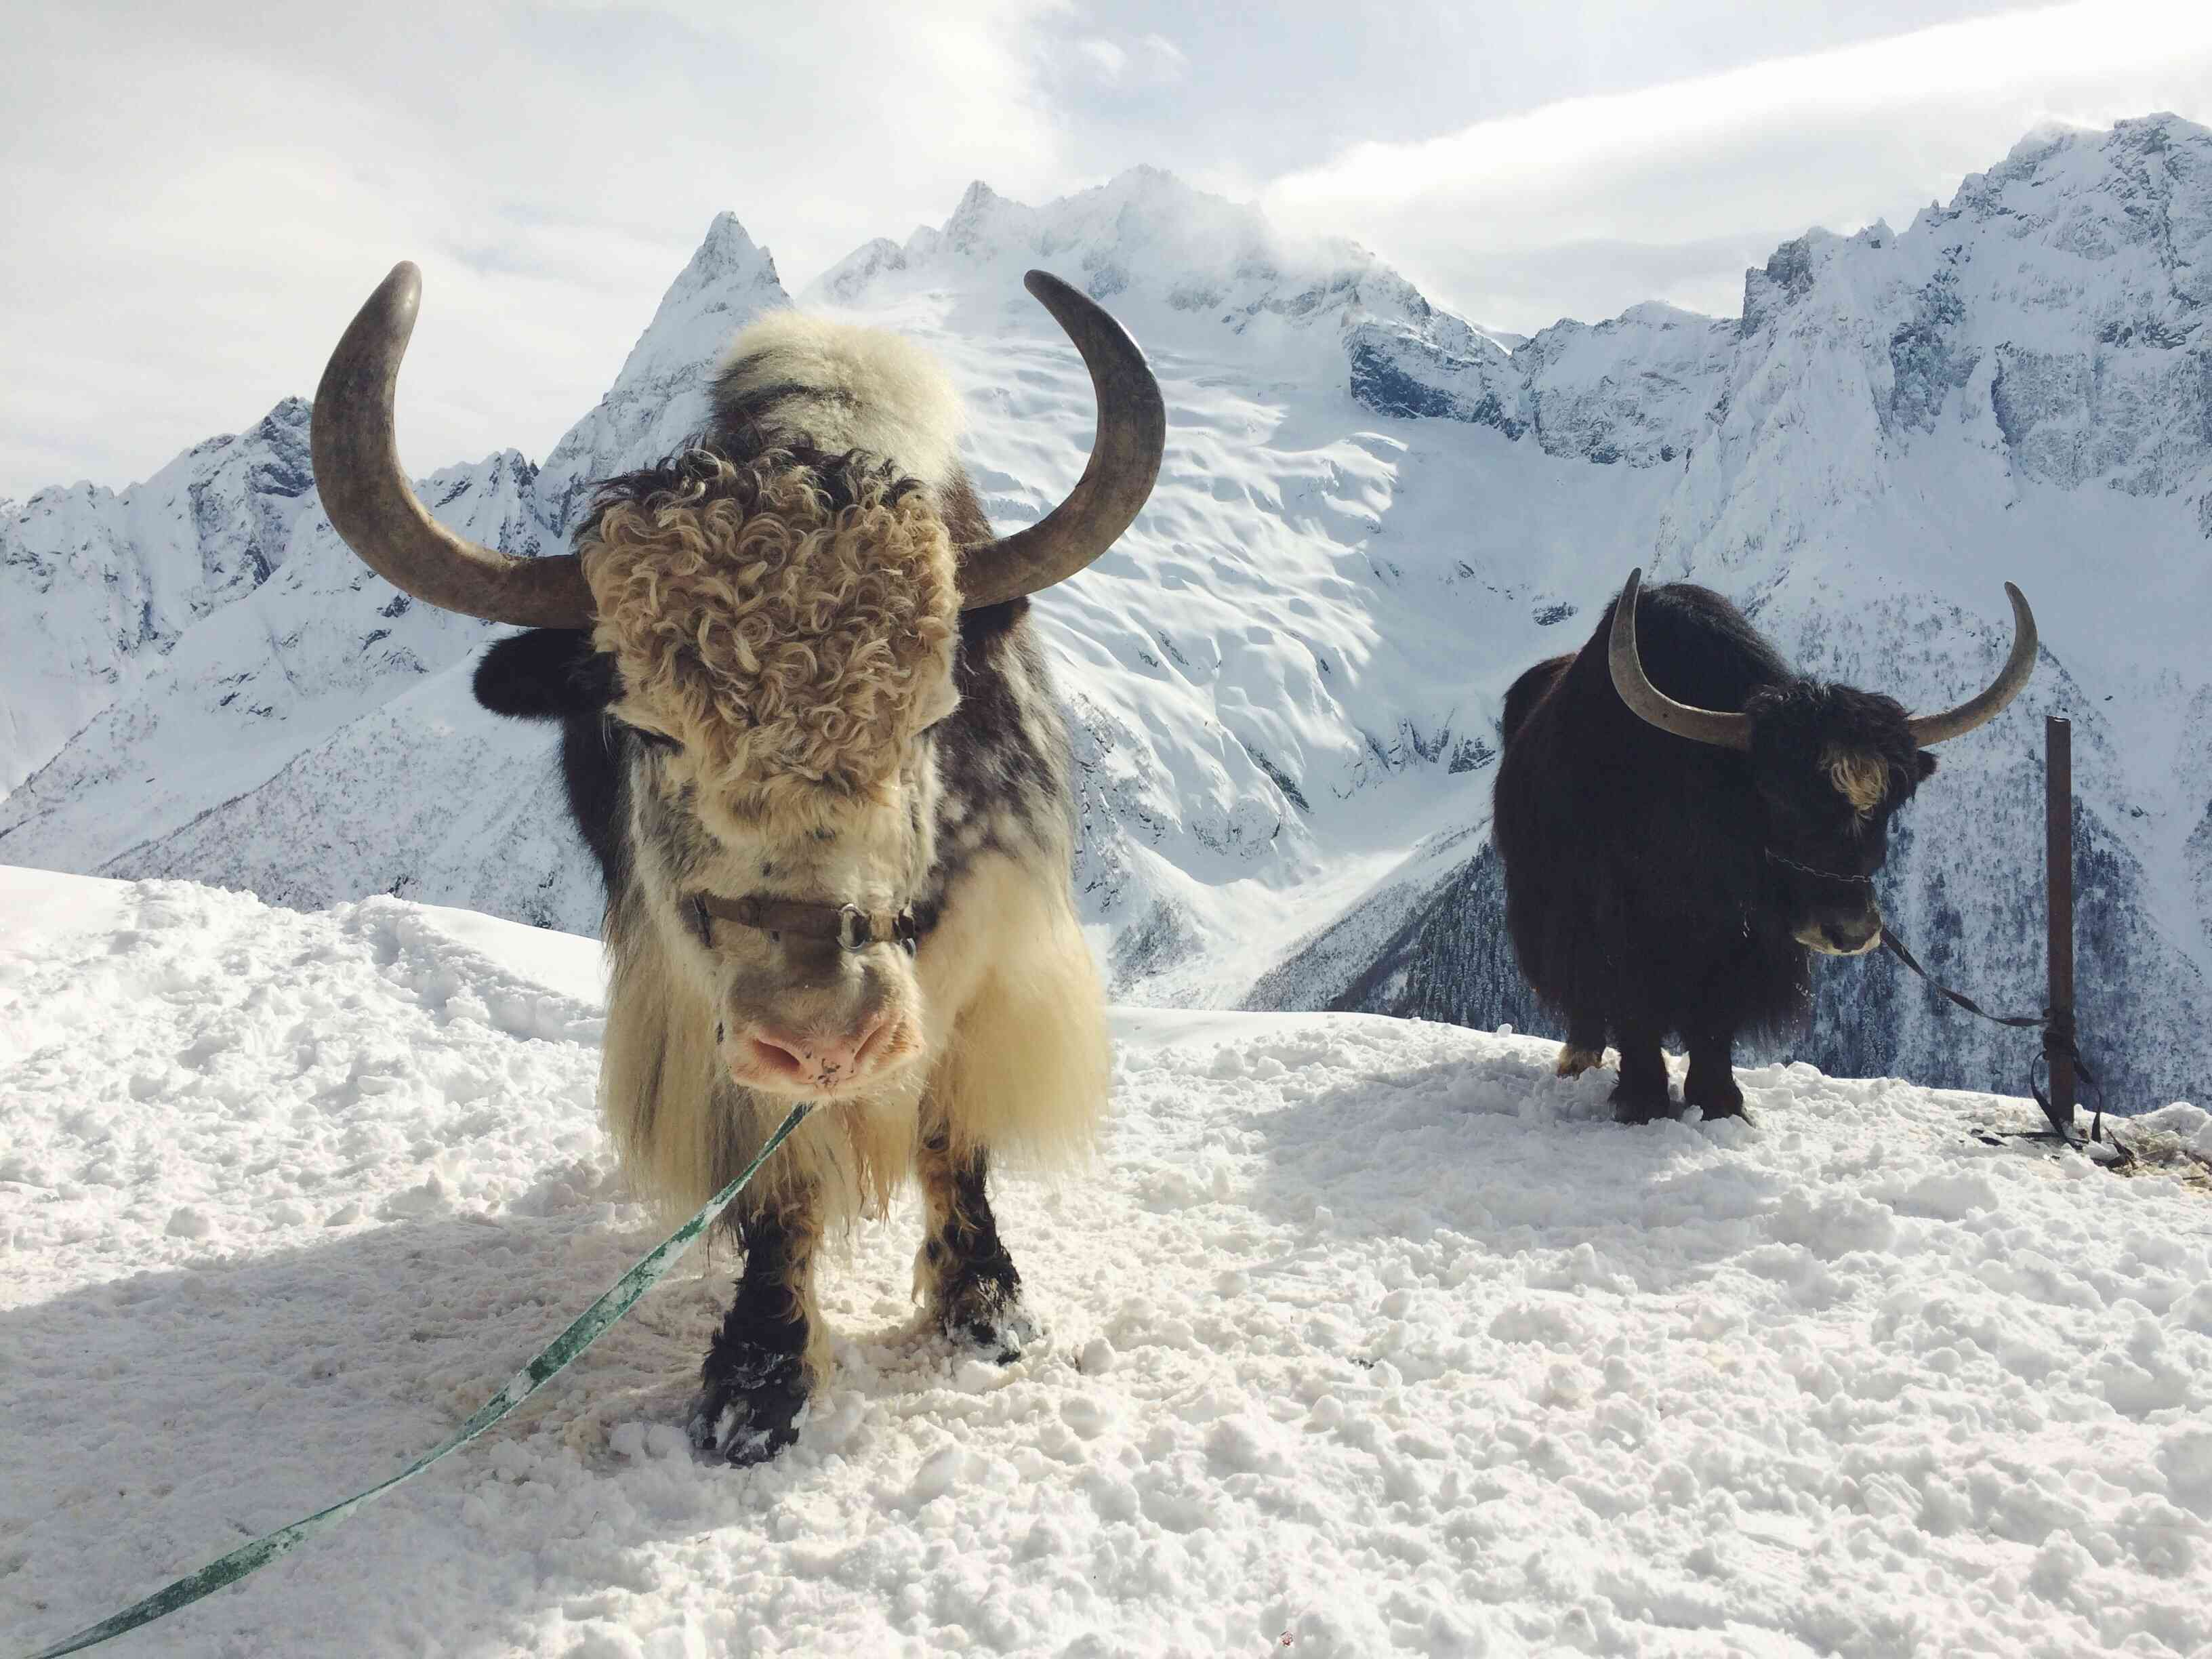 yaks standing in snow in mountains